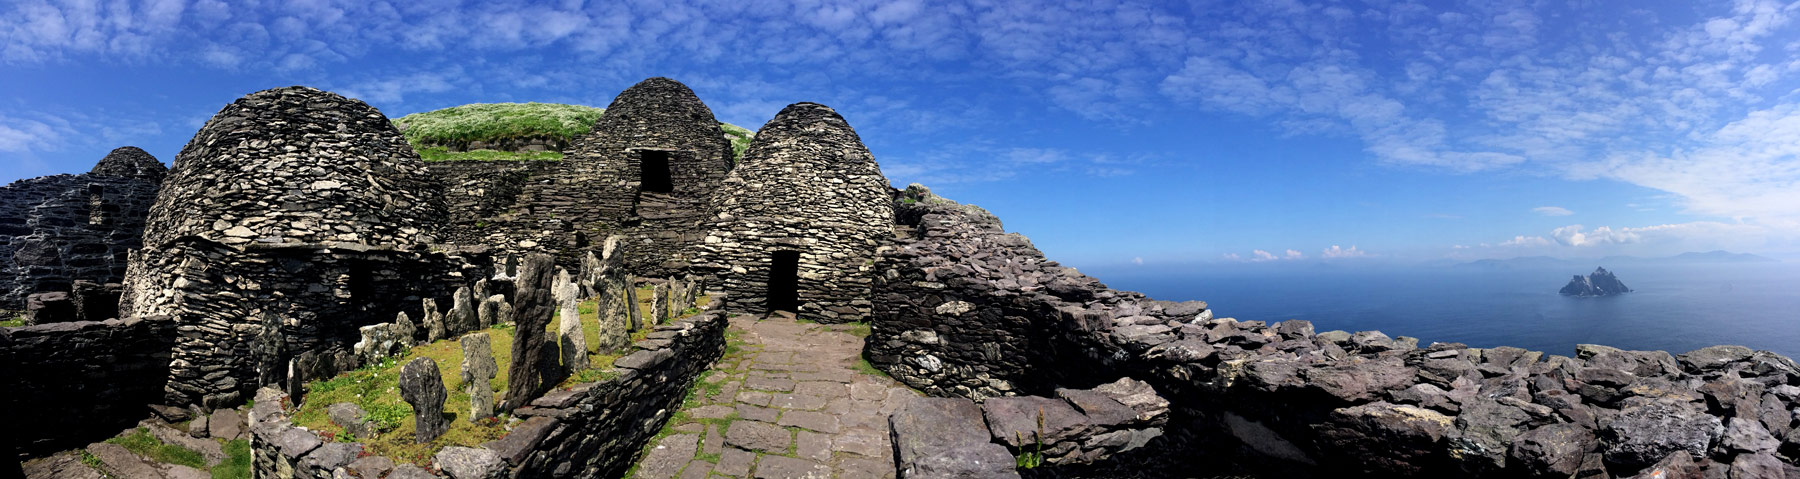 Beehive huts and small Skellig